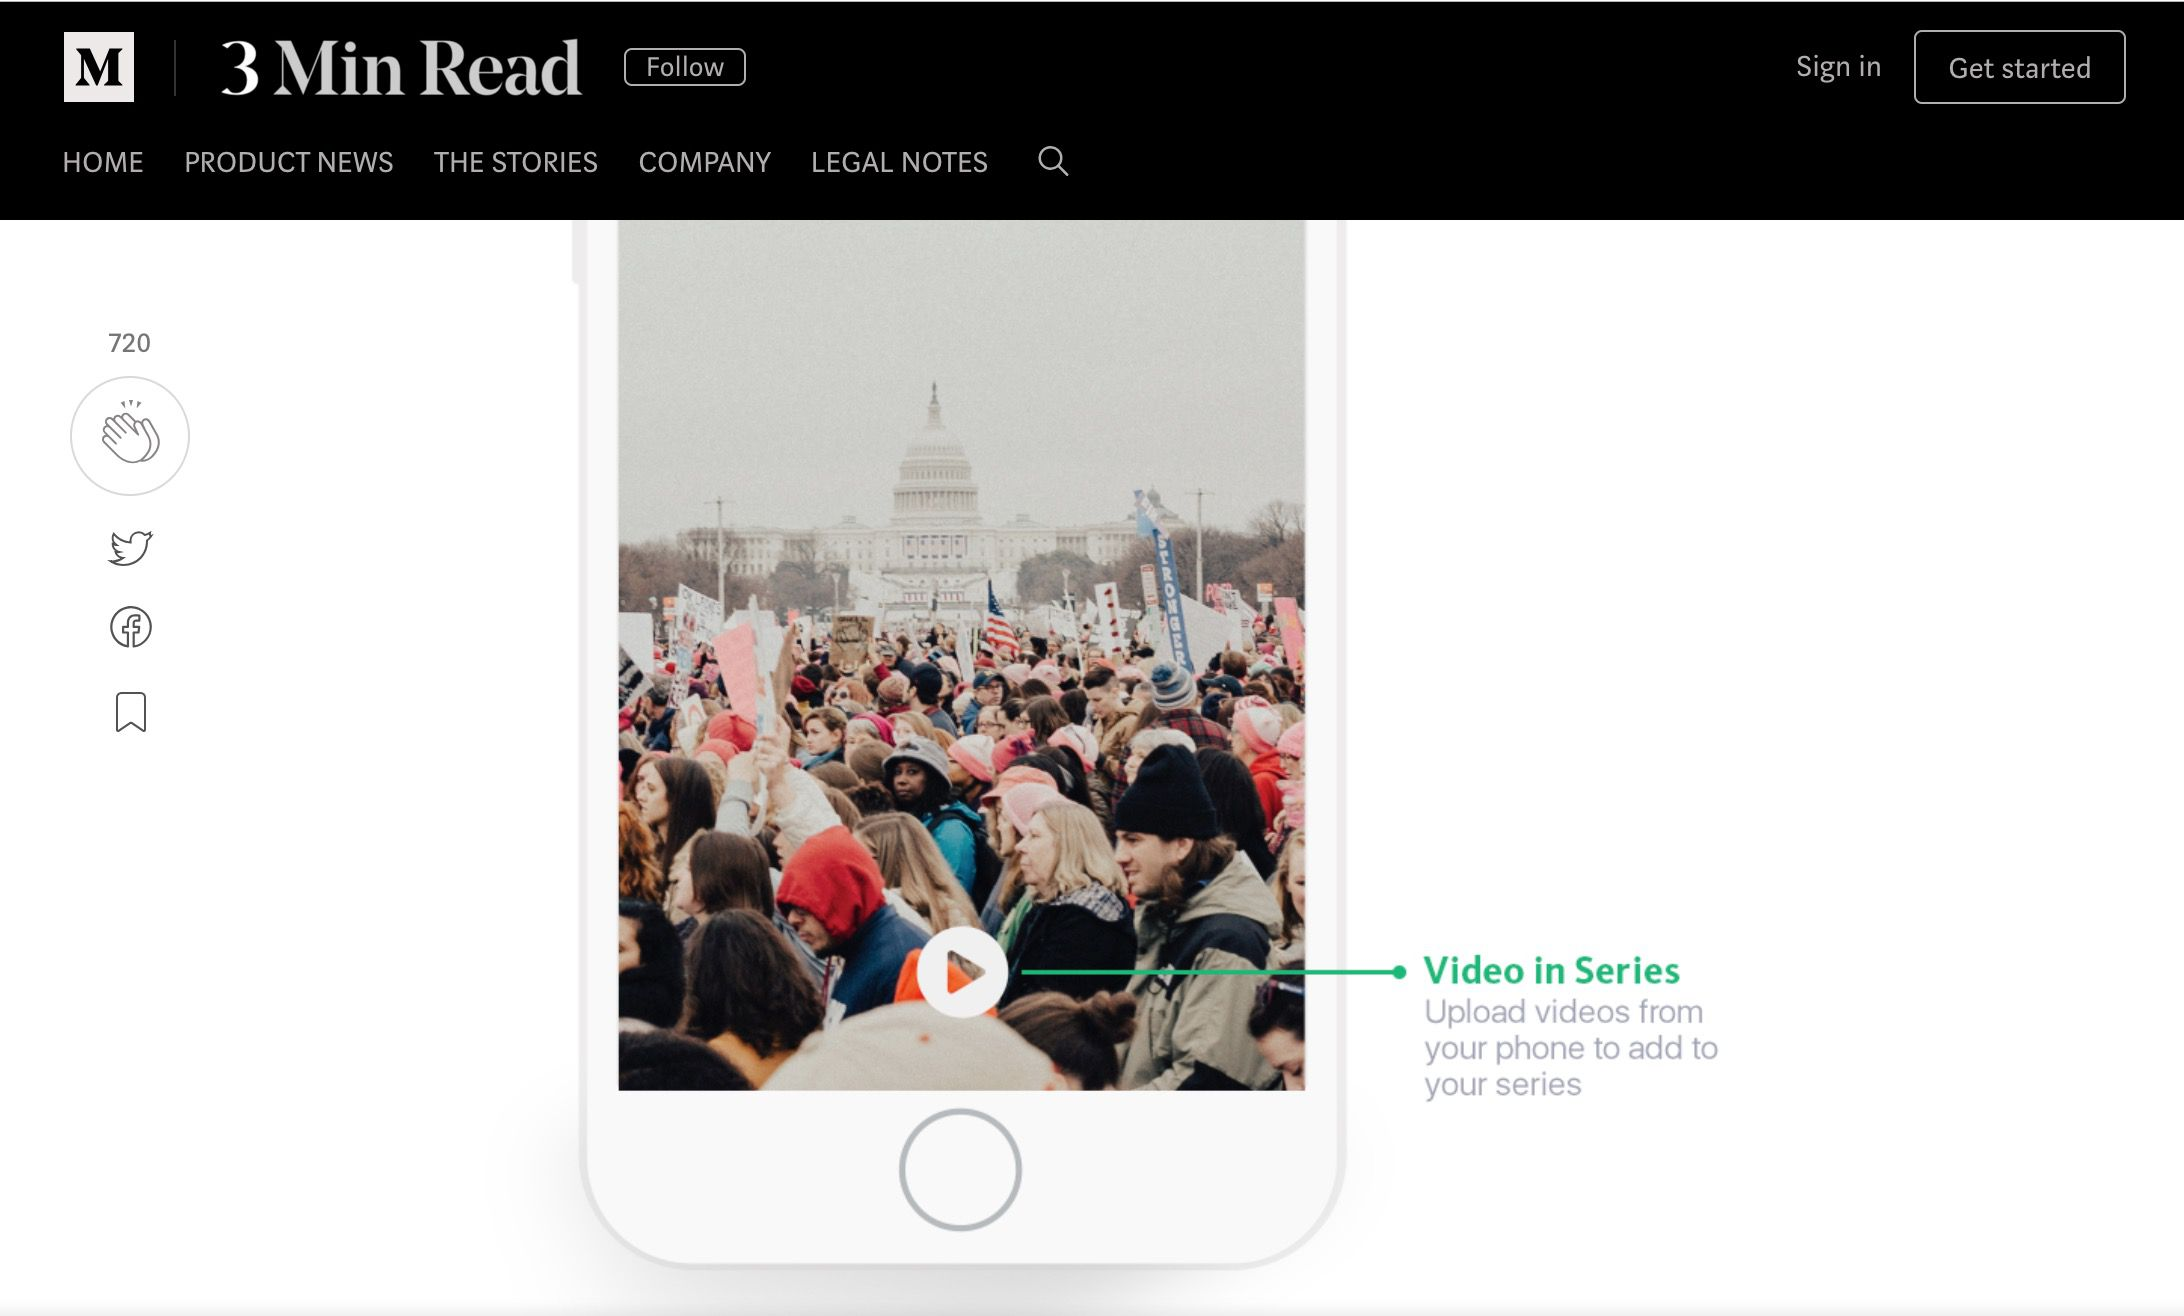 Medium's Video in Series web page